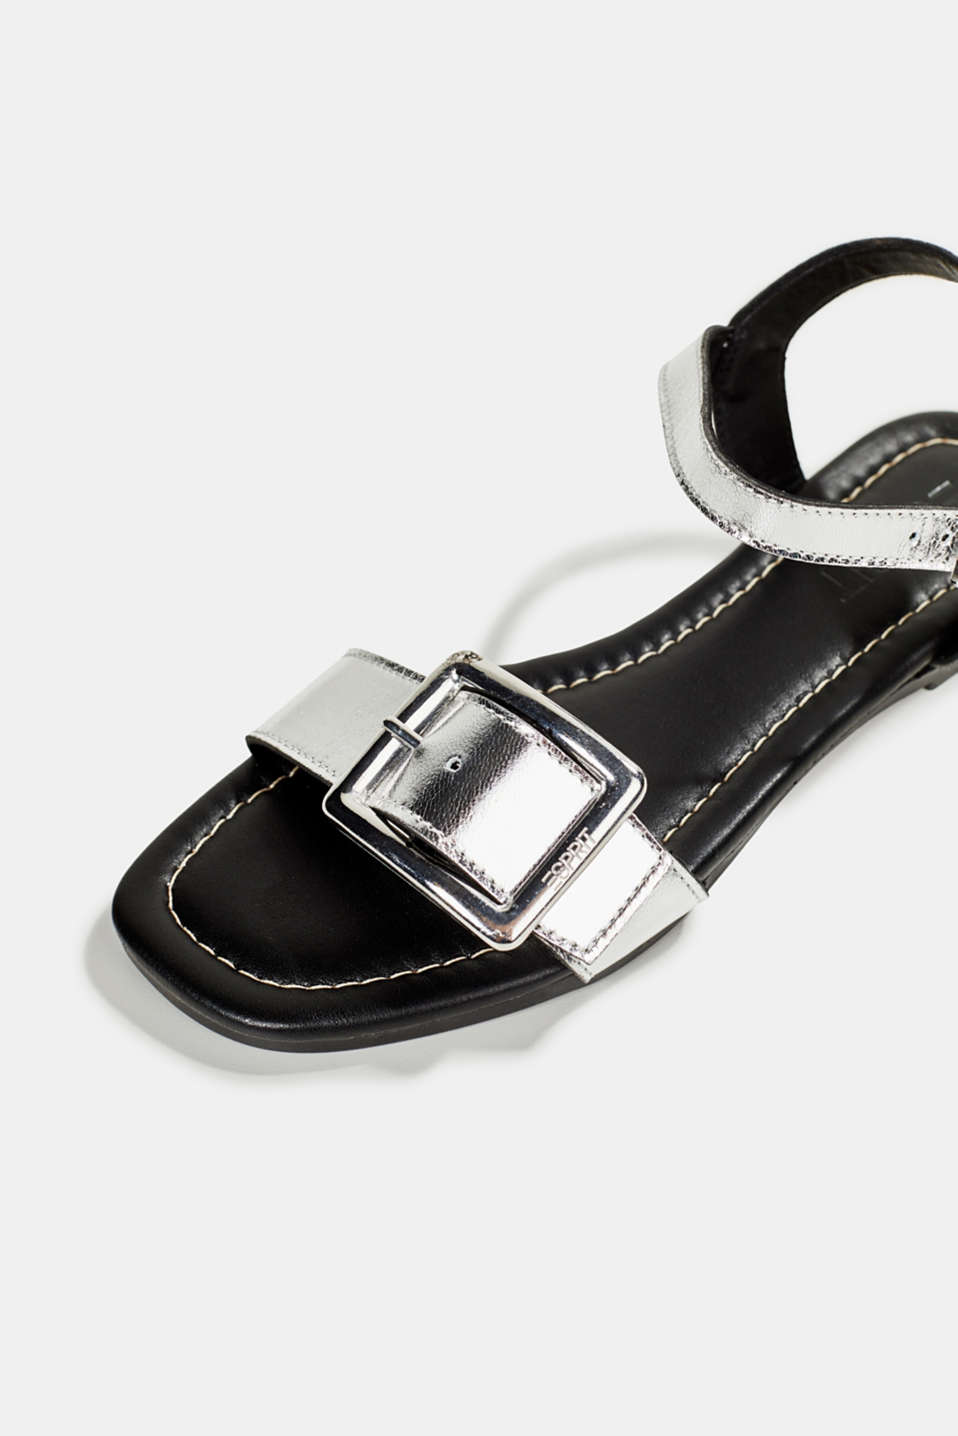 Leather sandals with buckles, SILVER, detail image number 4